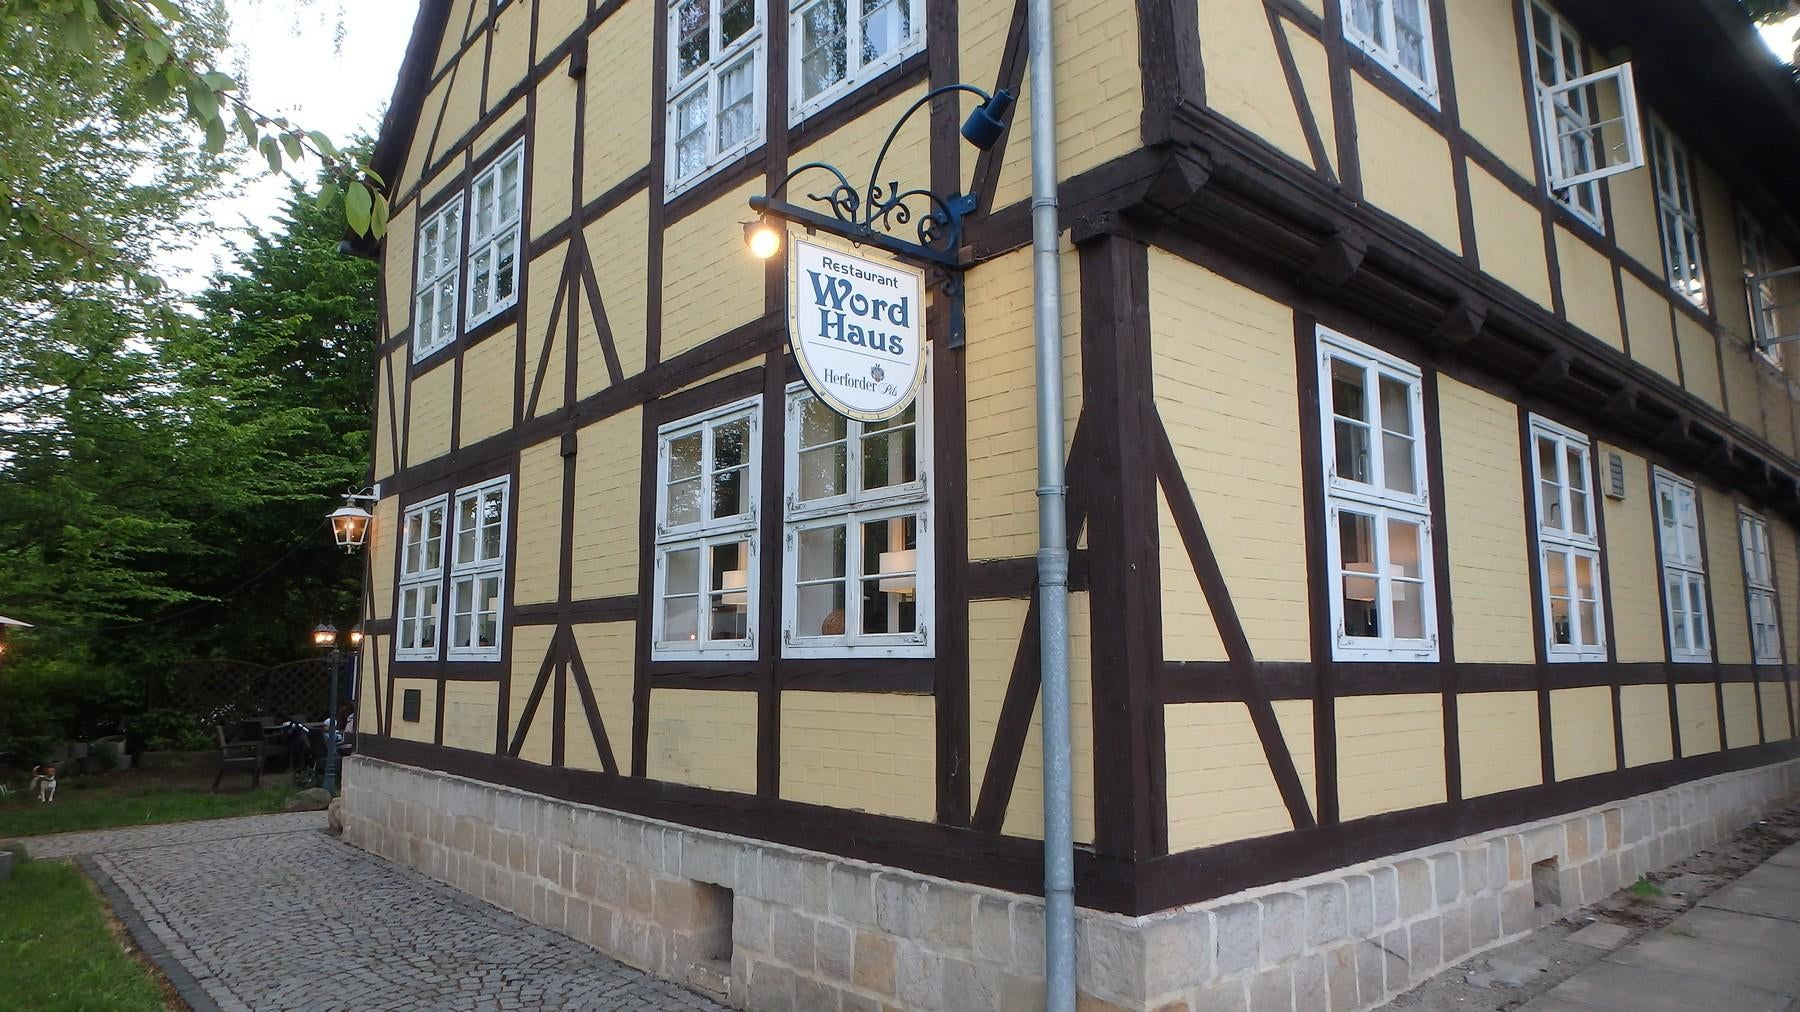 Speiserestaurant Word-Haus